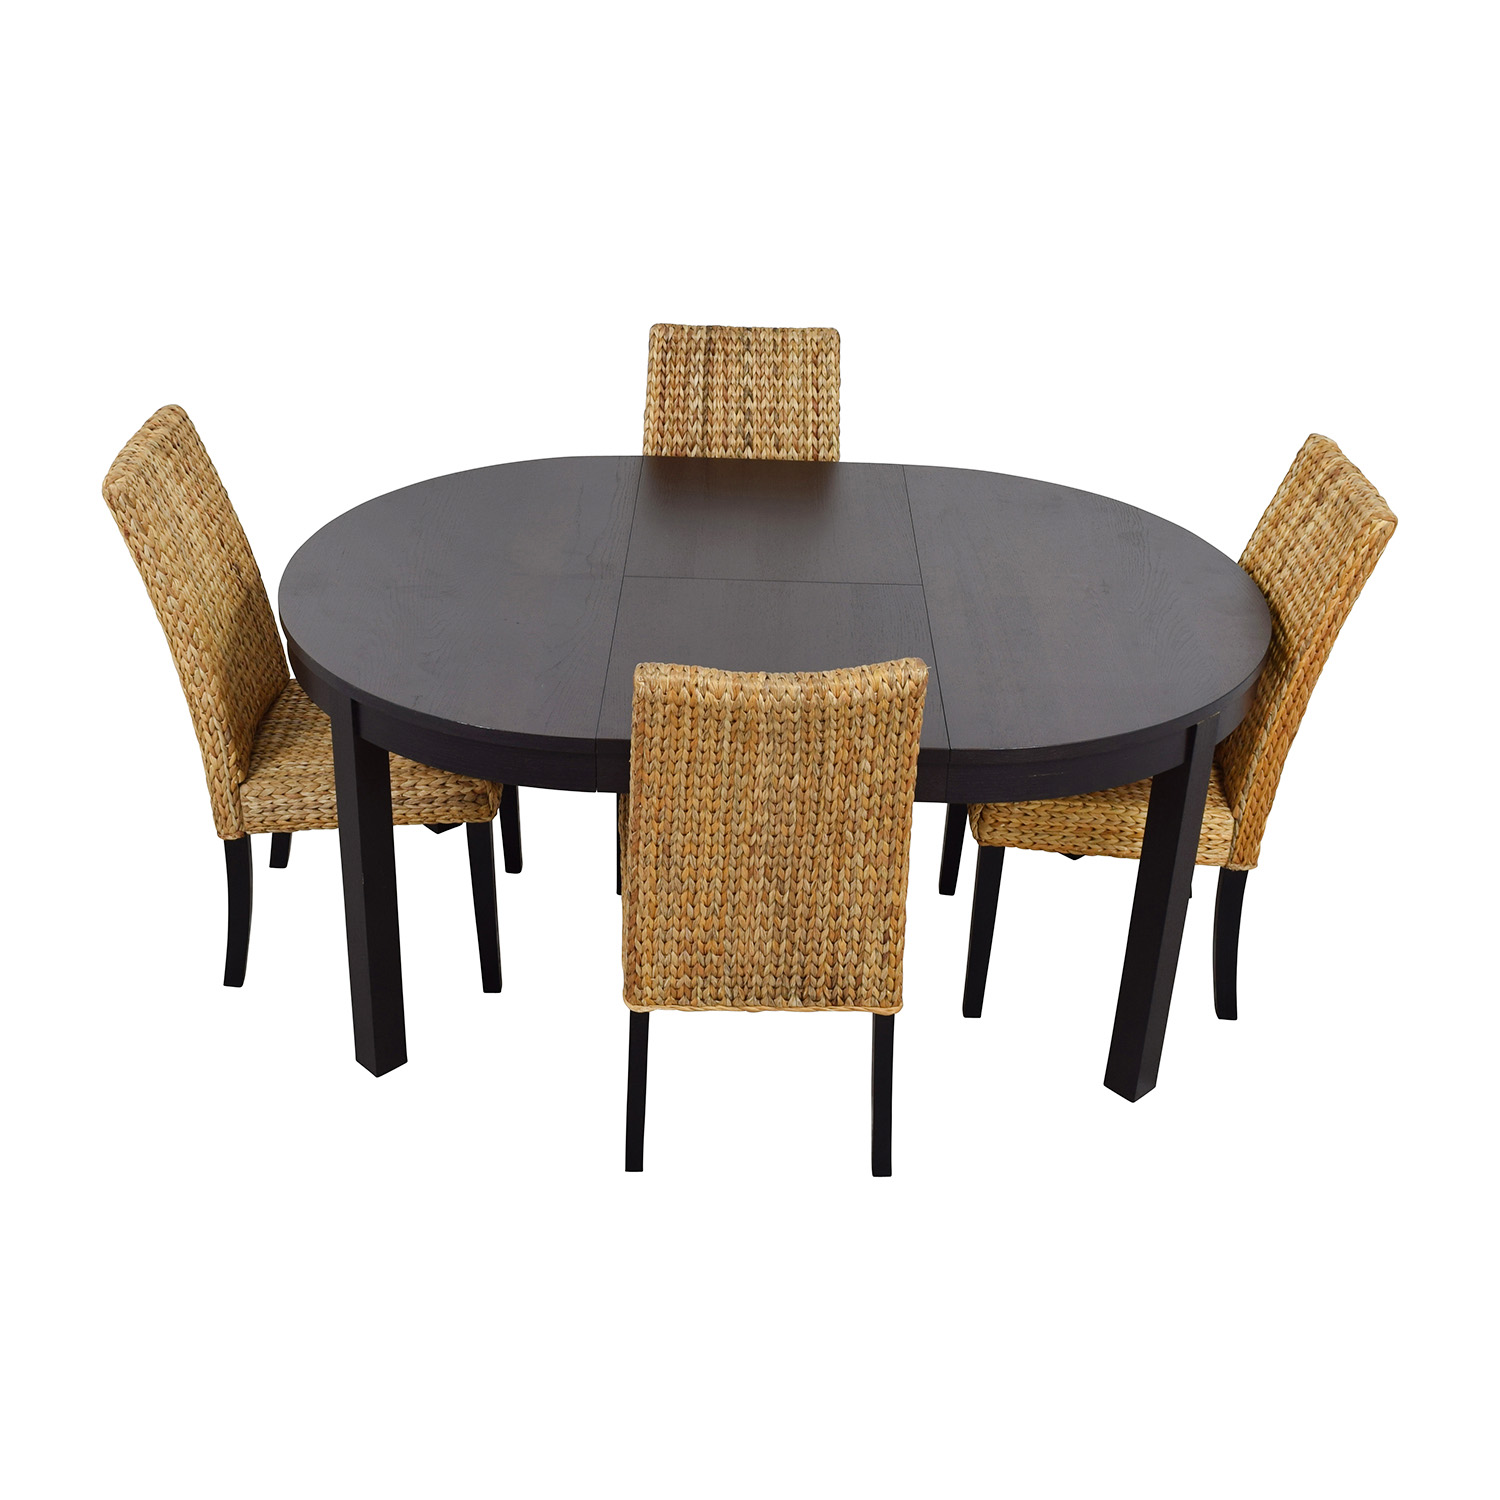 66 Off Macy 39 S Ikea Round Black Dining Table Set With Four Chairs Tables